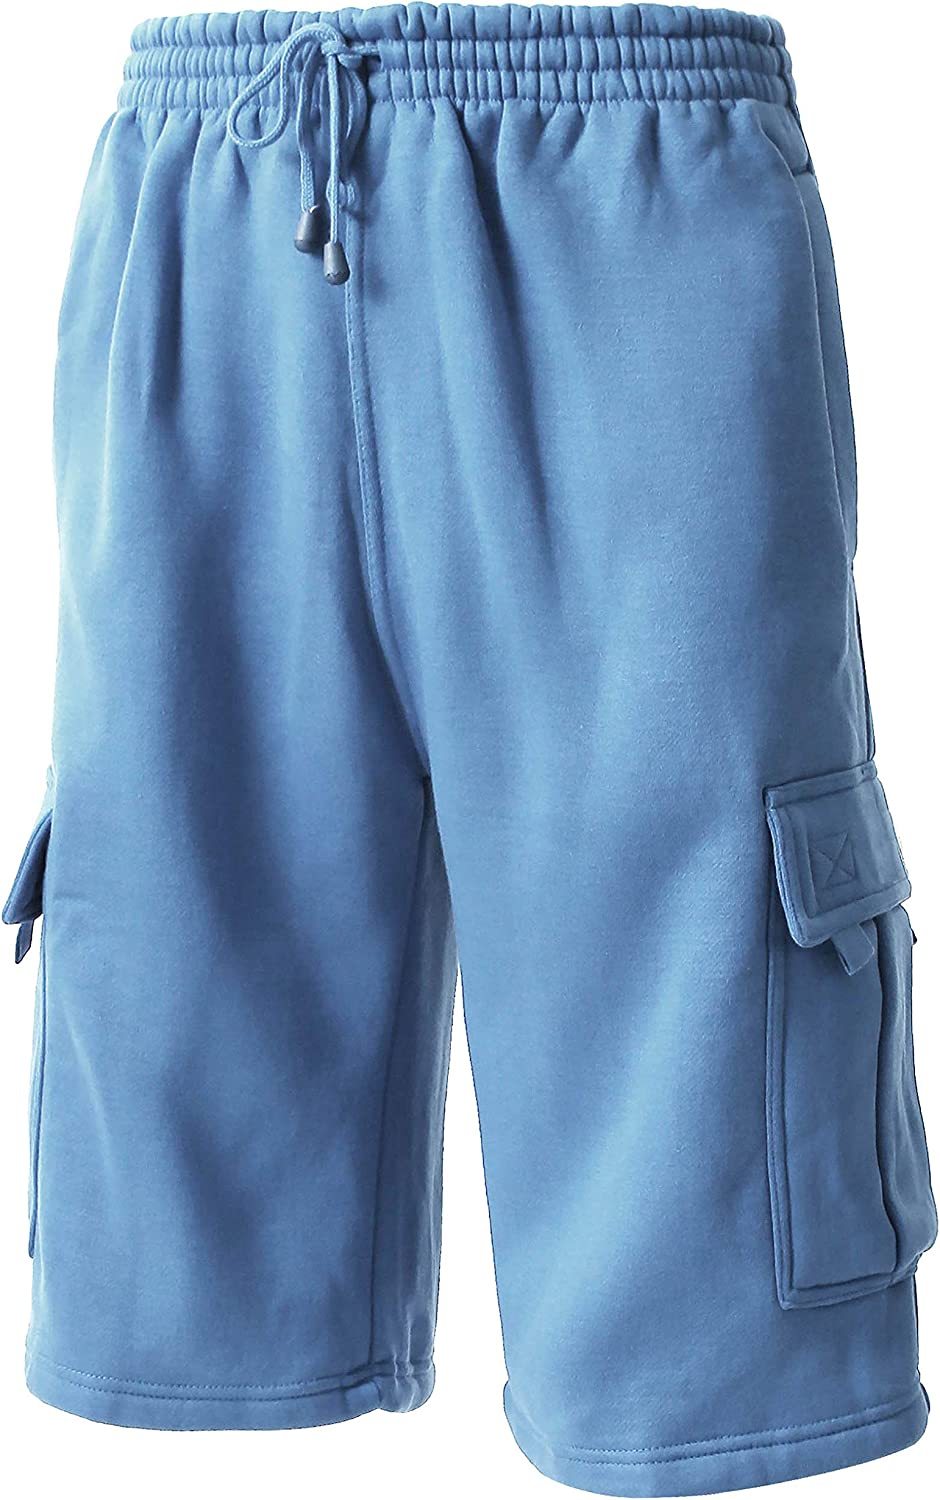 Ma Croix Men Premium Cargo Sweat Shorts & Sweatpants Loose Comfort Fit M-5XL